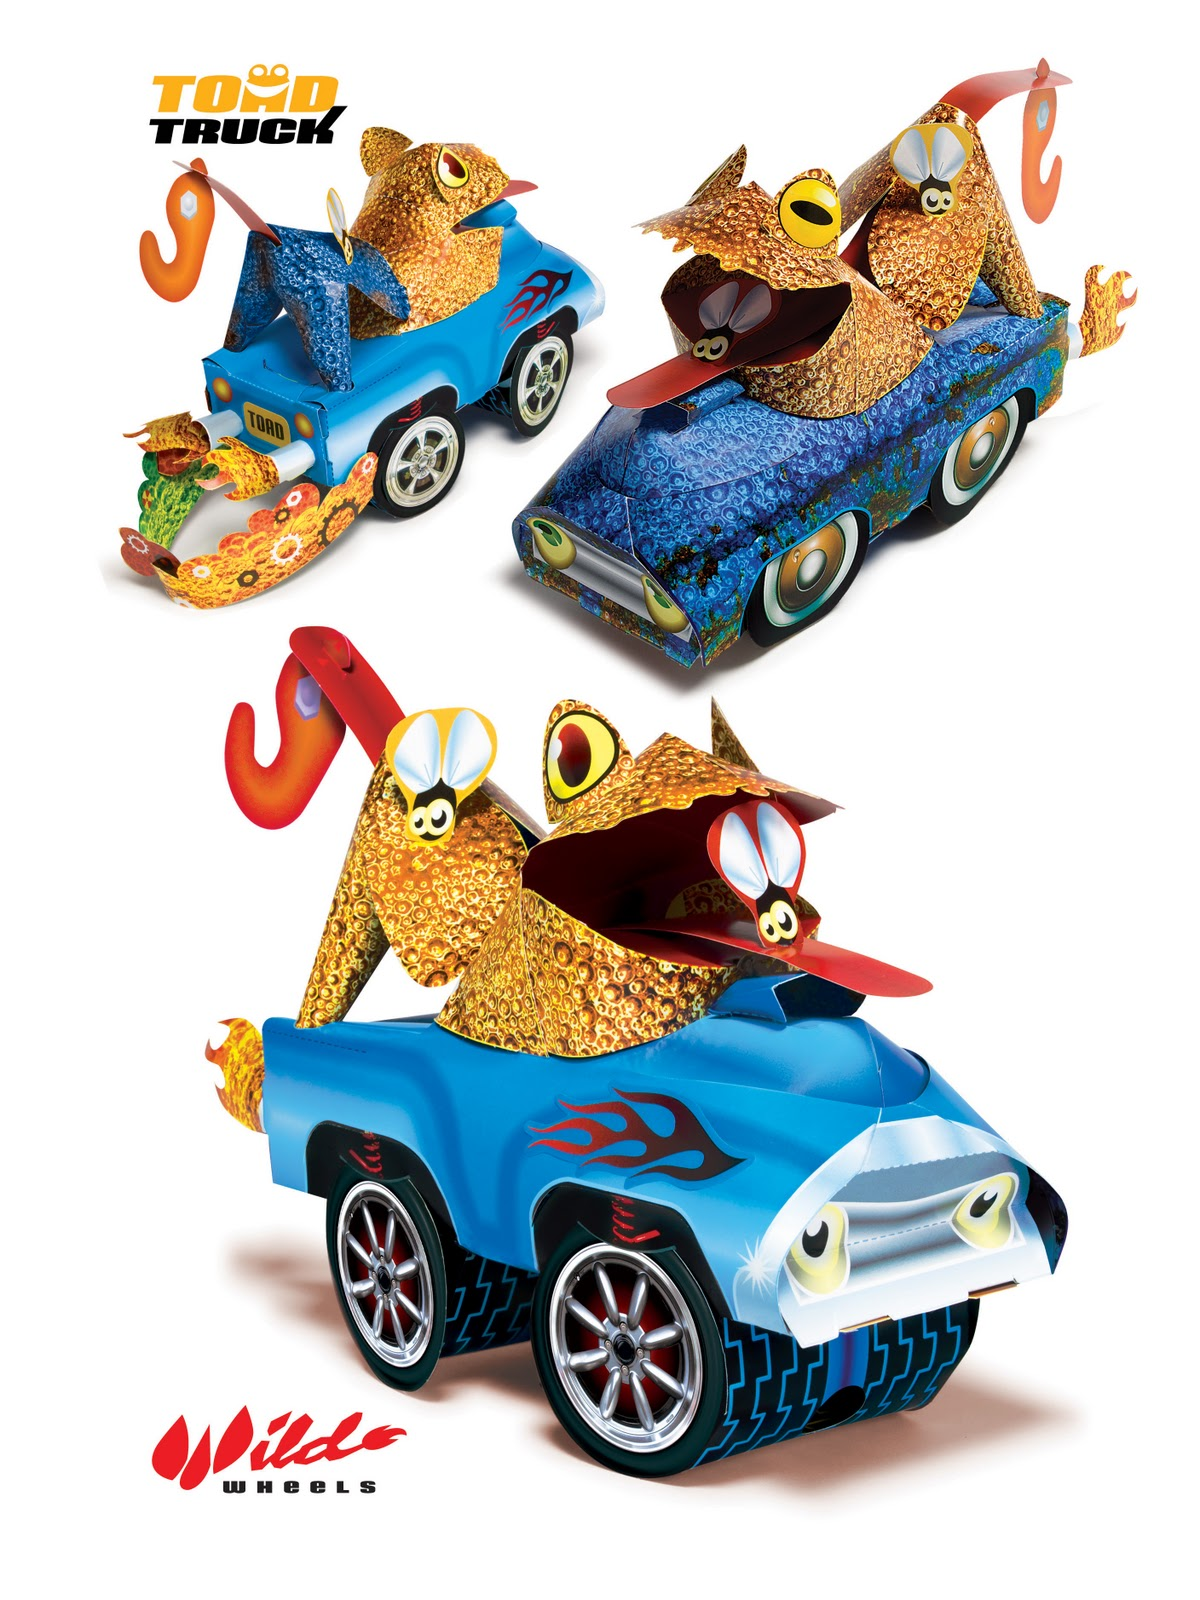 Motor Monsters Paper Model Cars Wild Wheels Toy